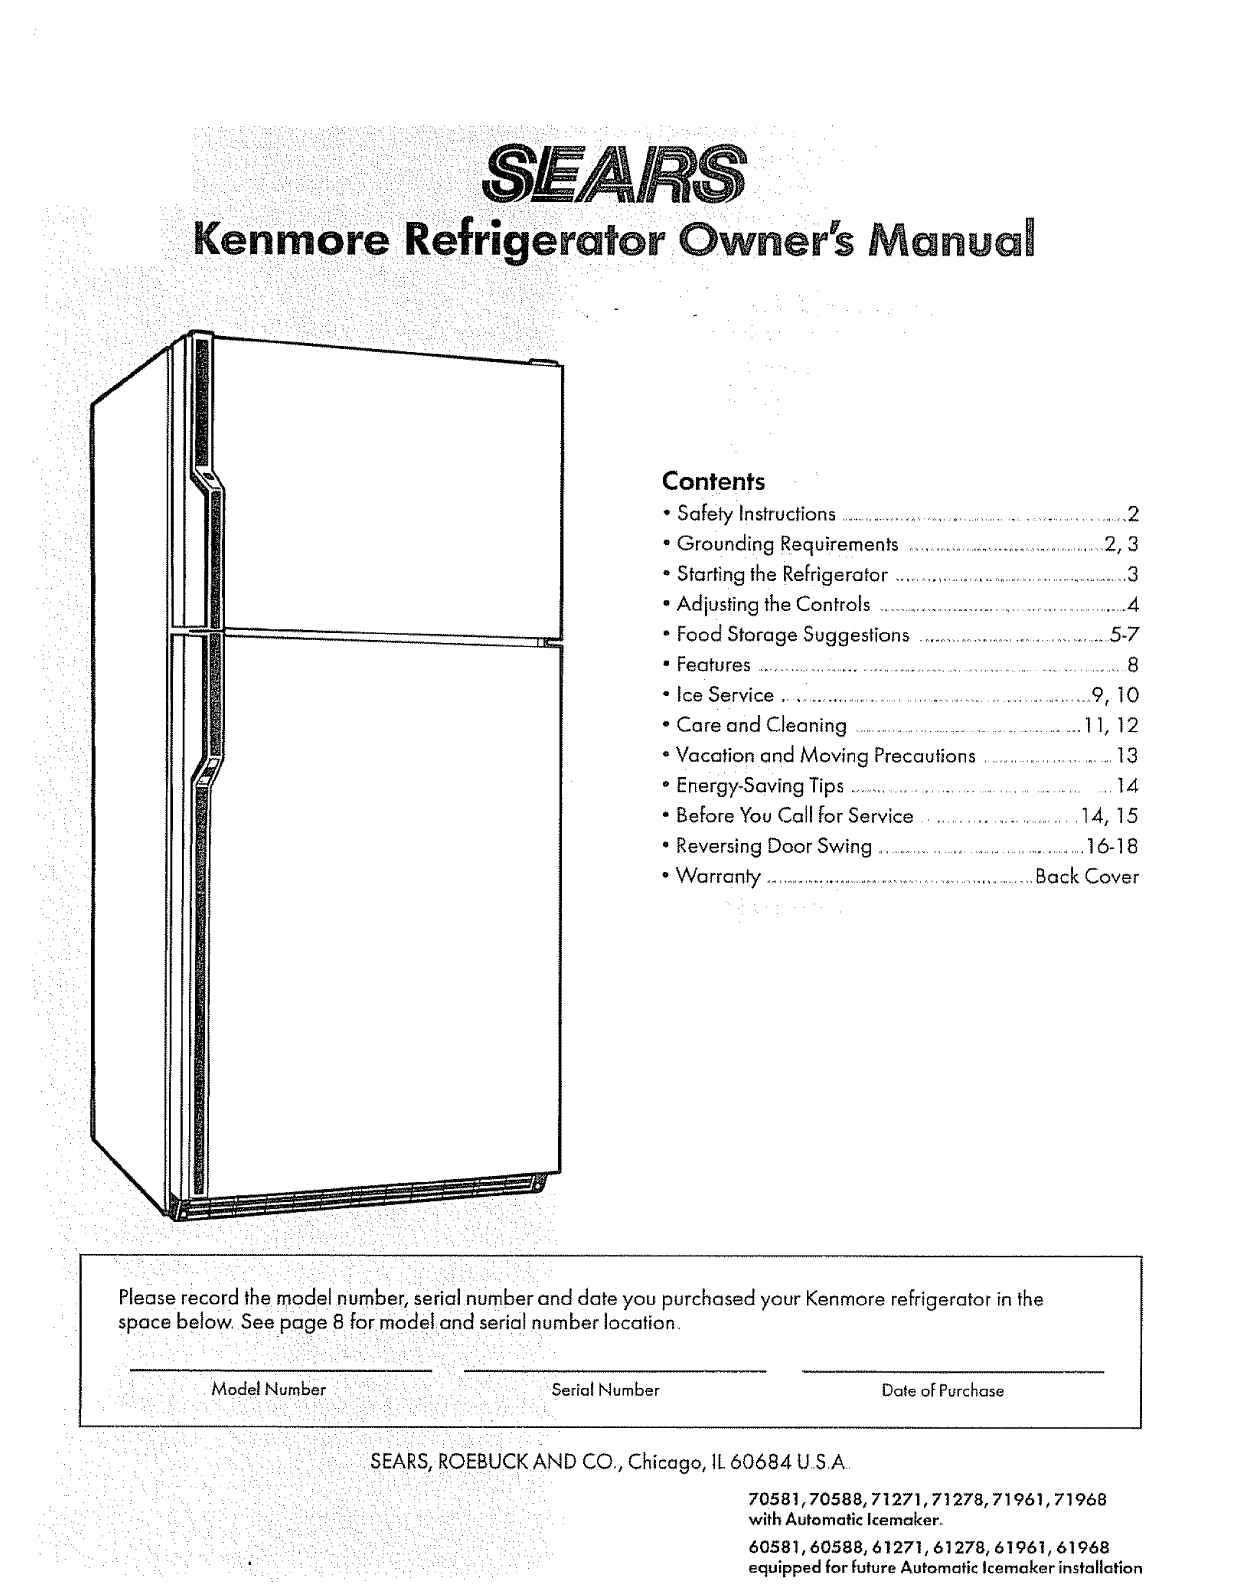 sears refrigerator 61271 user guide manualsonline com Whirlpool Dishwasher Manual Kenmore Elite Dishwasher Manual